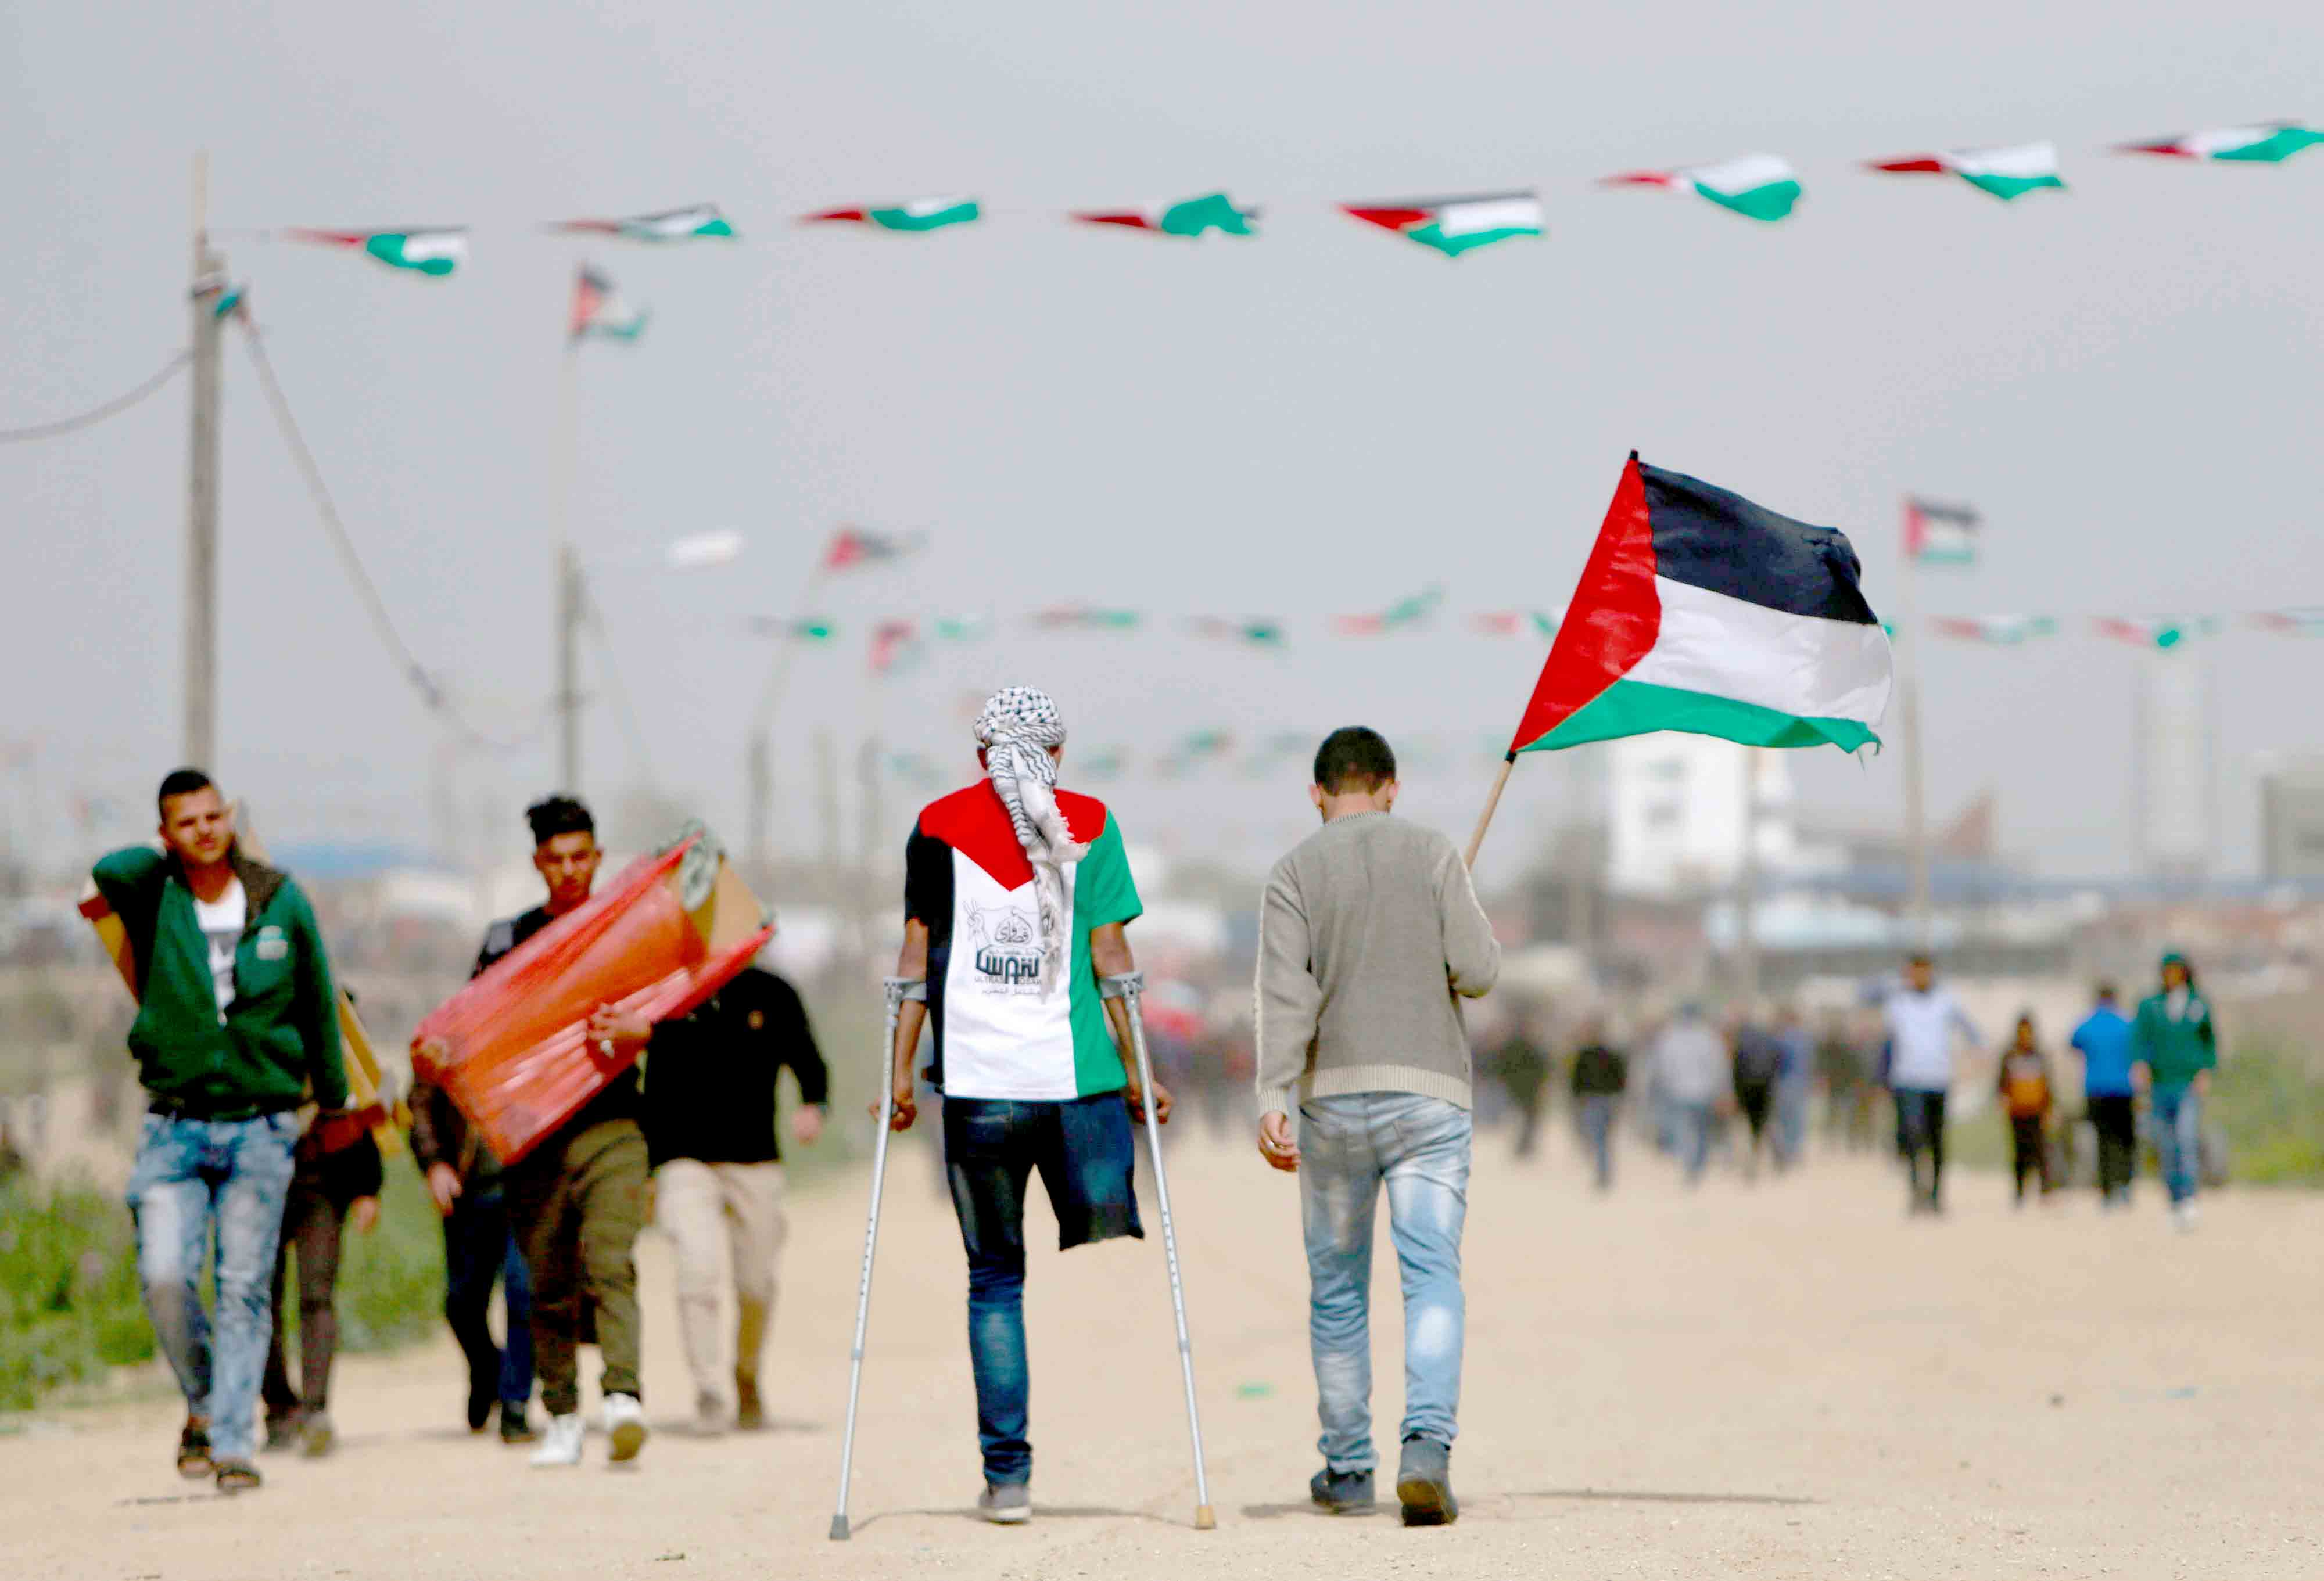 Limited options. A Palestinian man wearing a t-shirt depicting the colours of the Palestinian flag walks on crutches with another holding a national flag as they head towards a demonstration near the border with Israel, March 30. (AFP)